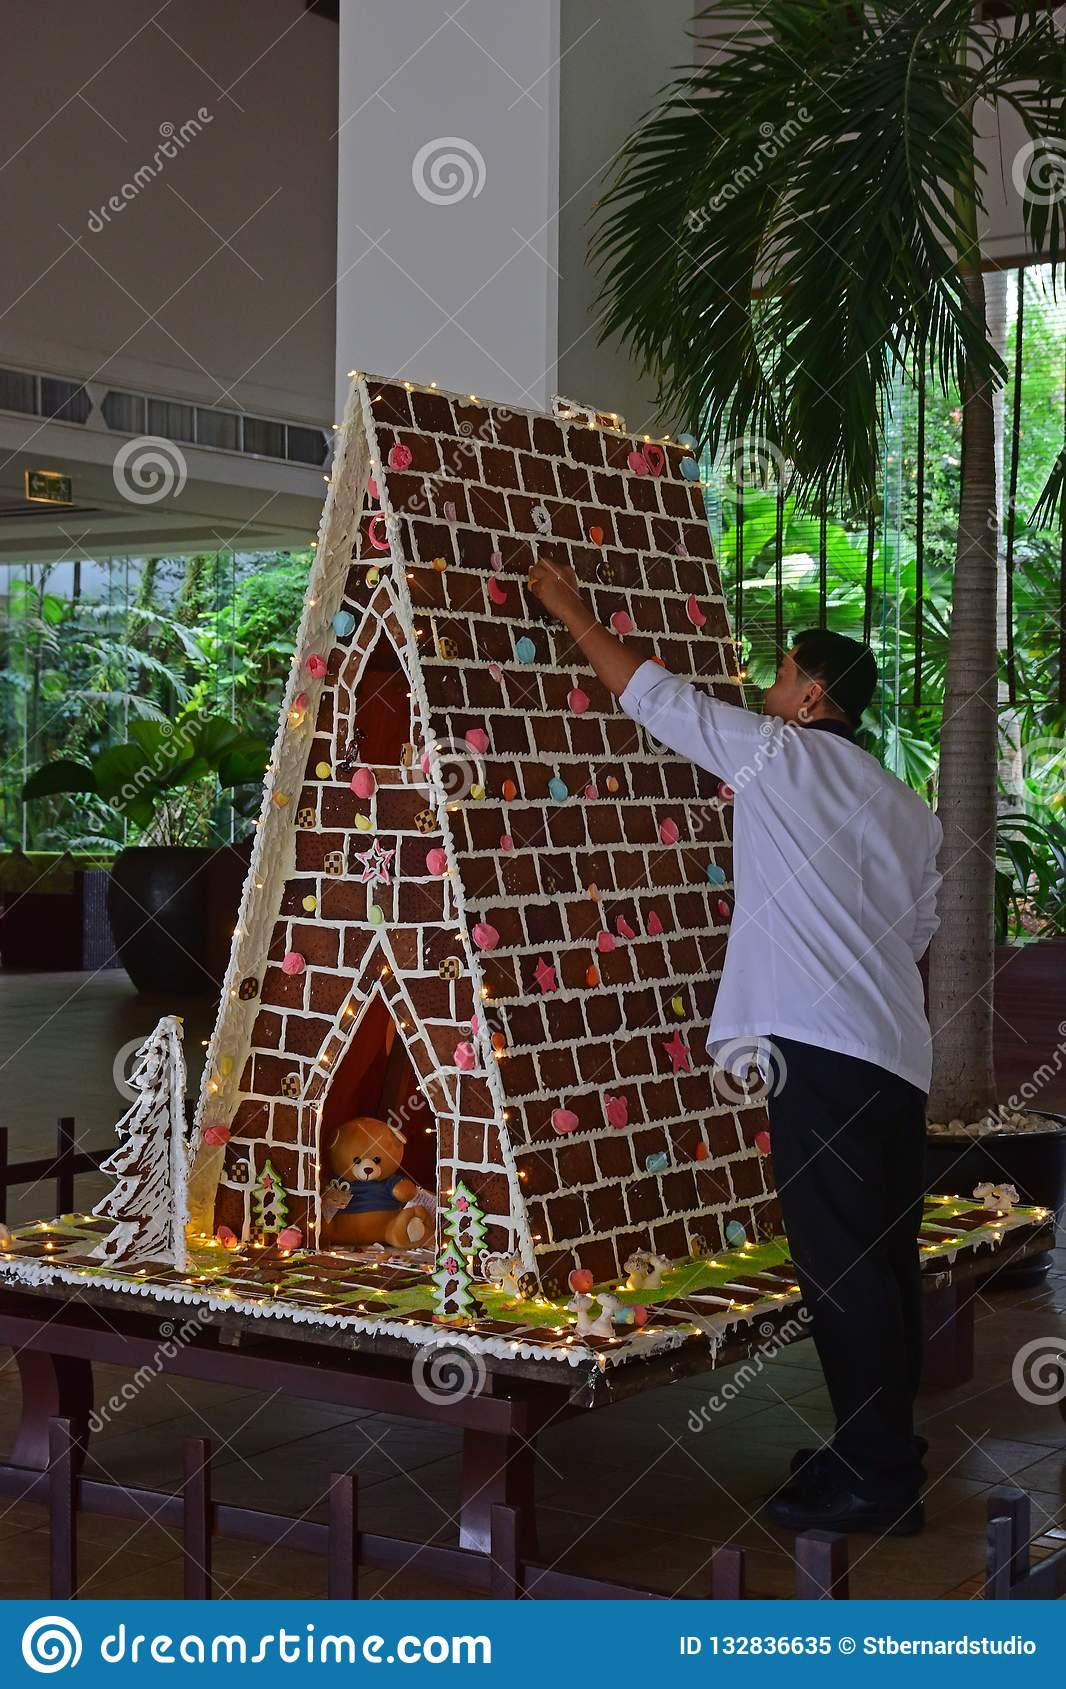 Man building large gingerbread house in a commercial setup